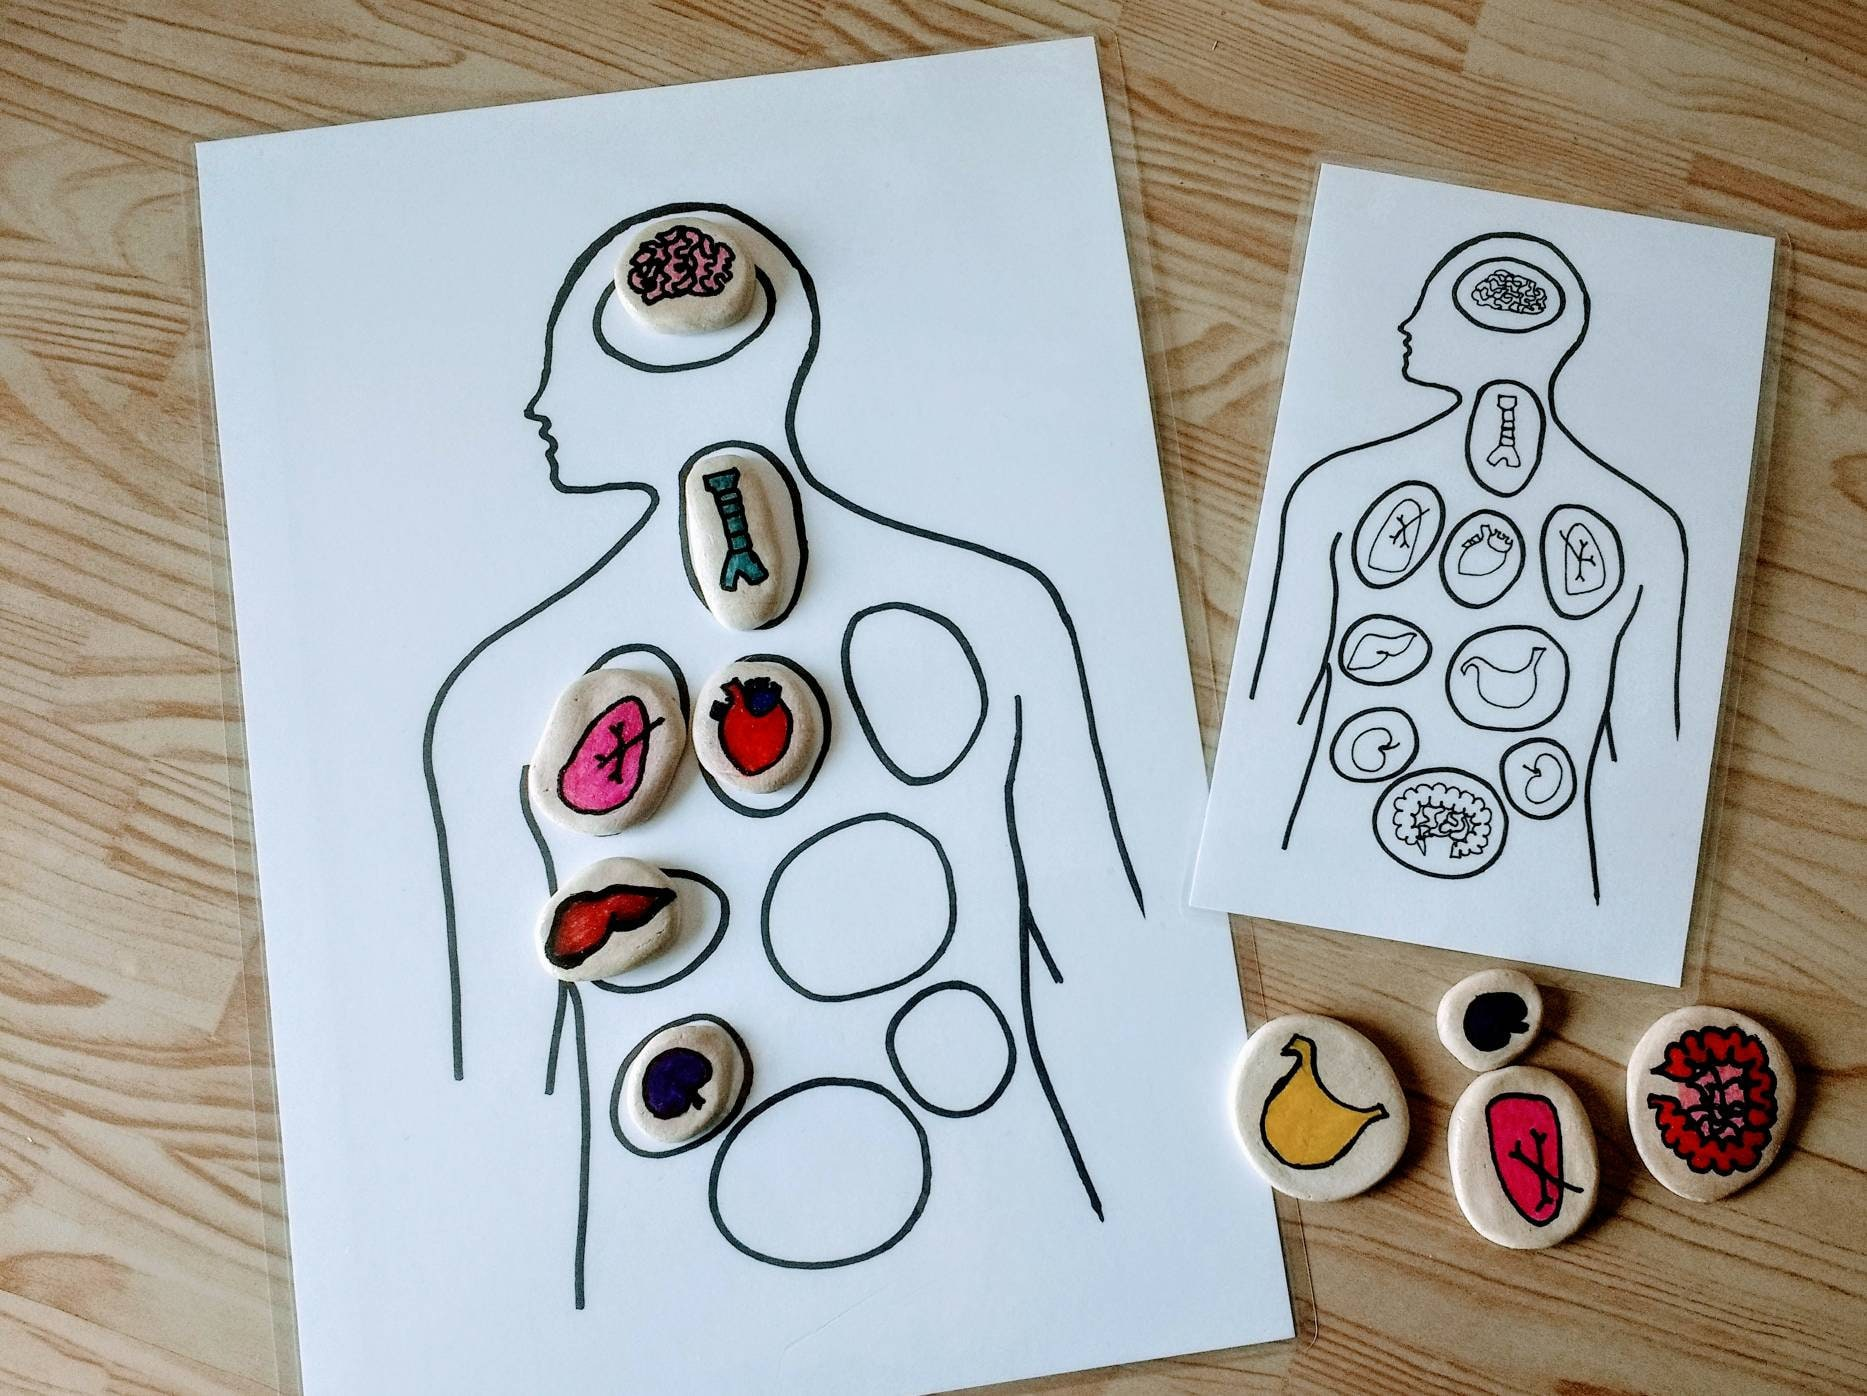 Anatomy Game Montessori Materials 10 Pieces Included Etsy